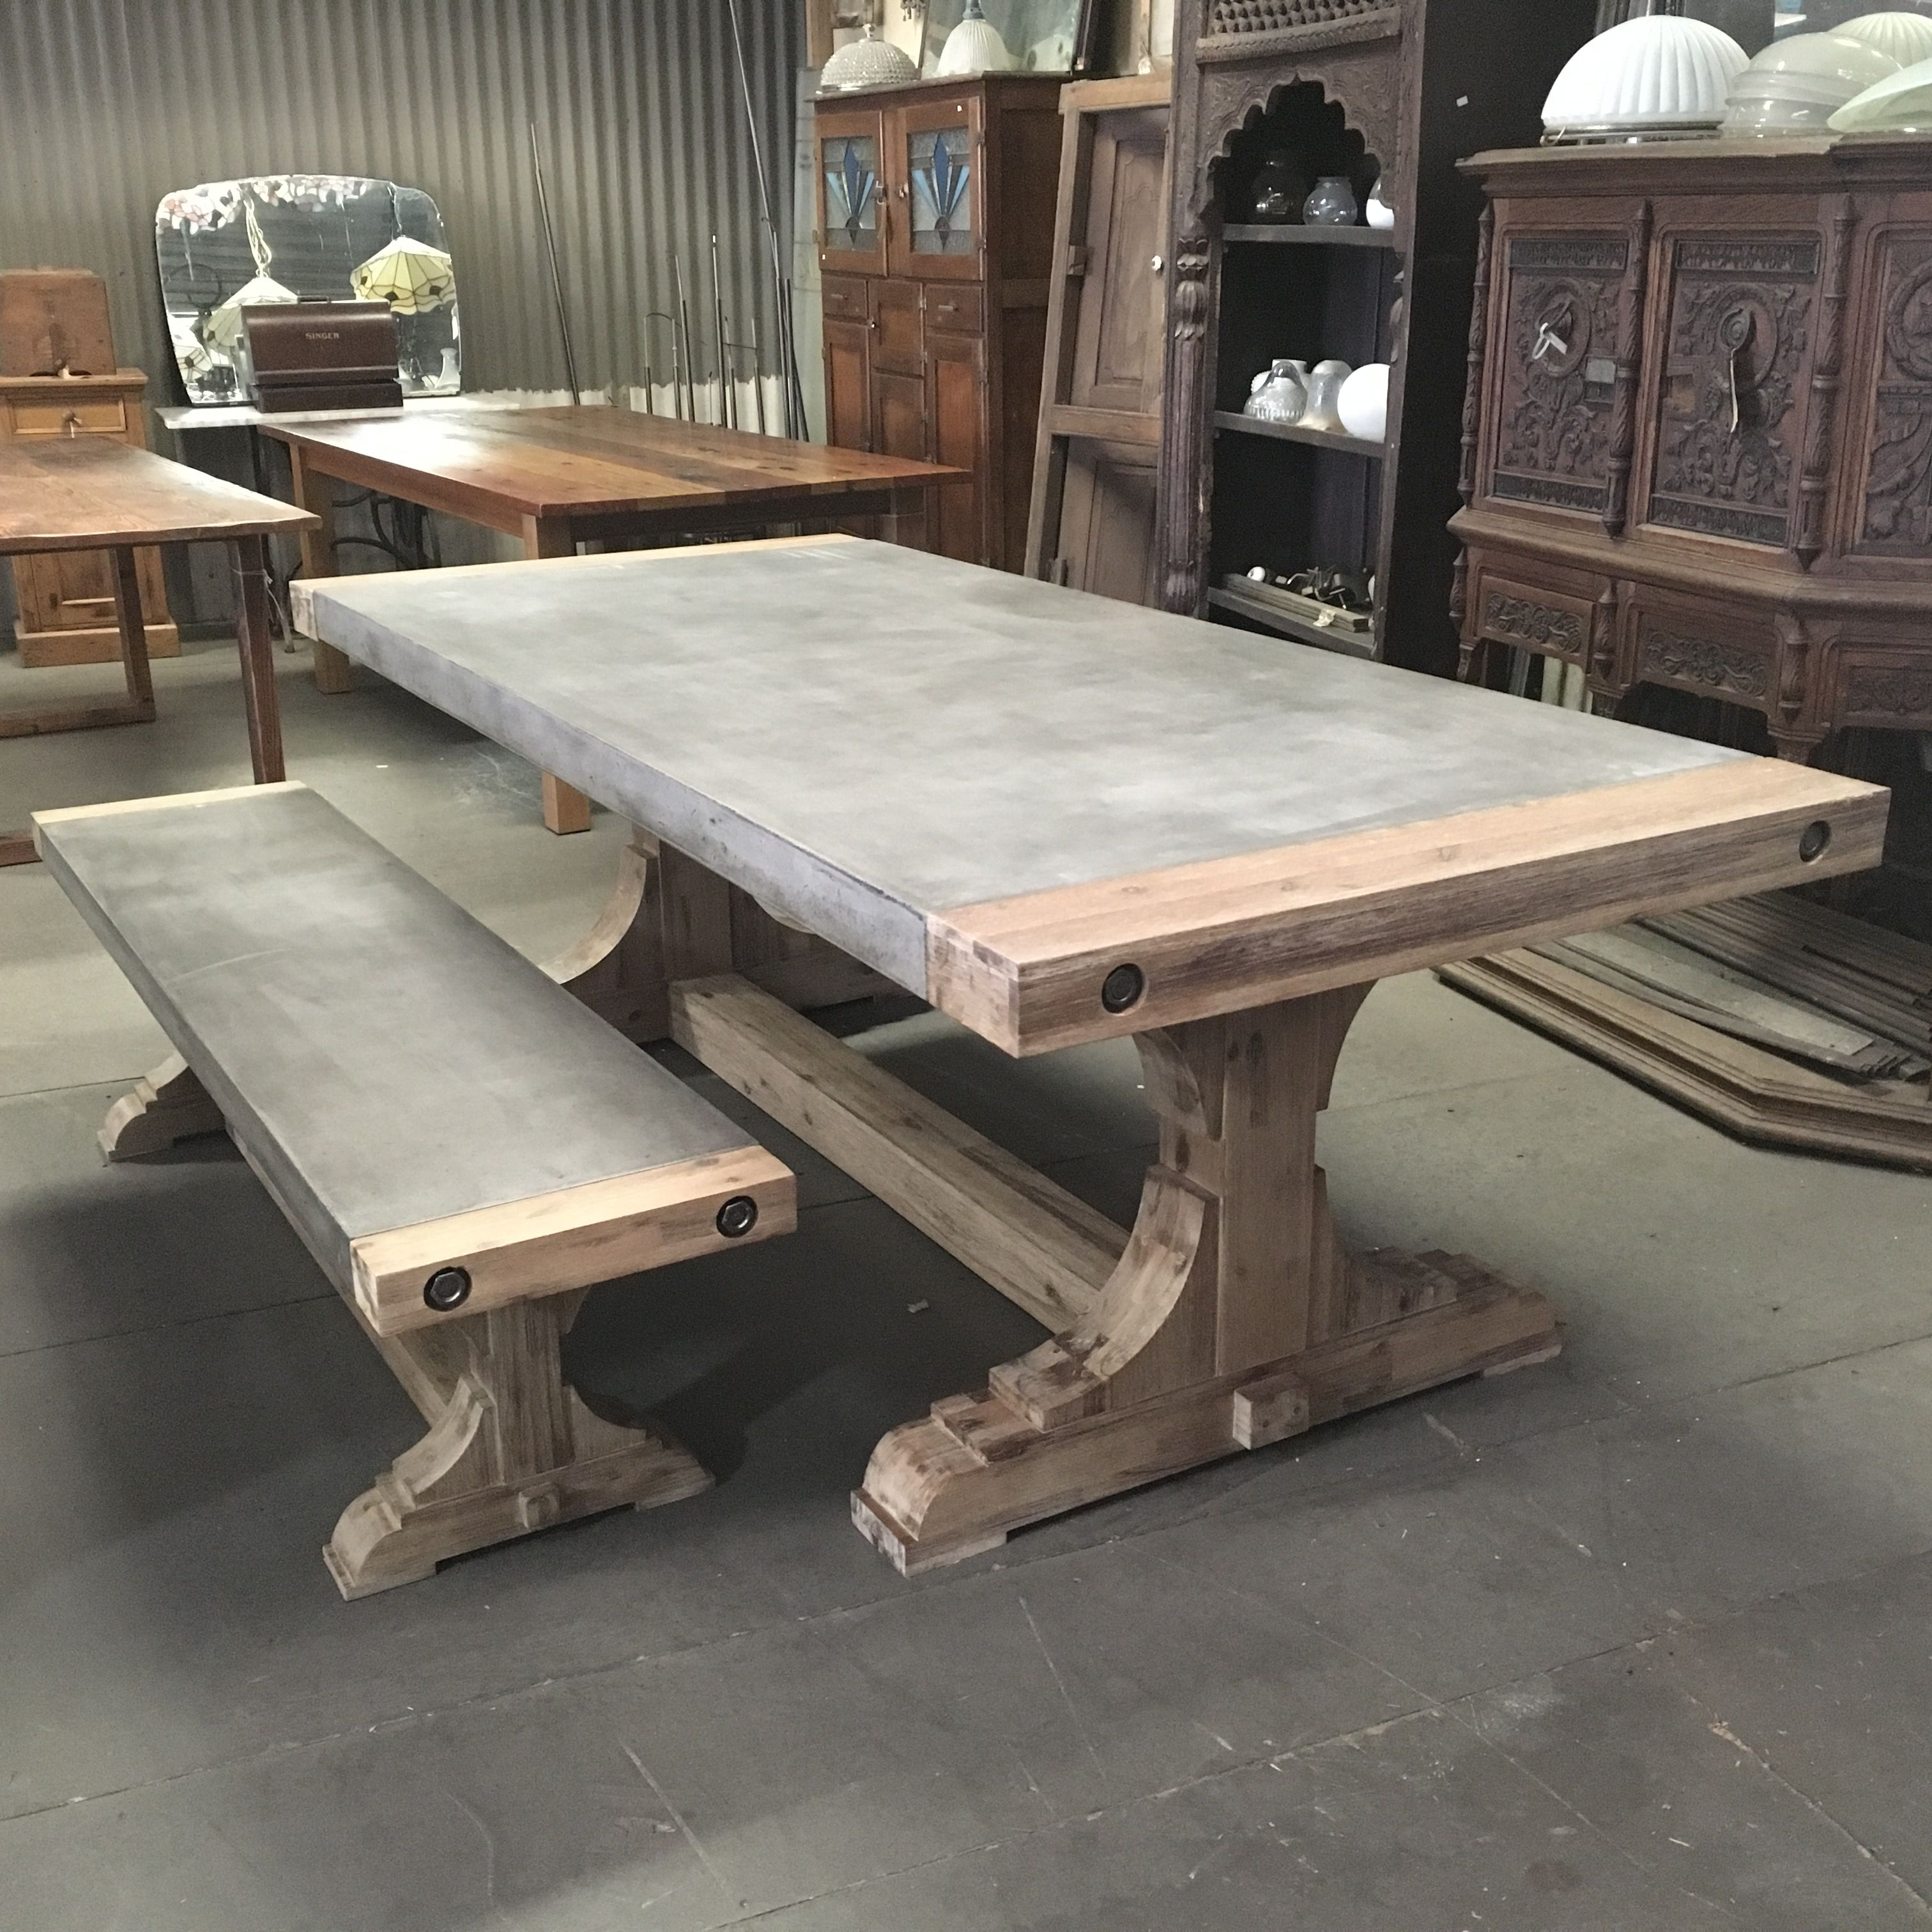 Home Dining Can Be Fun The Pirate Is A Polished Concrete Distressed Wood Base